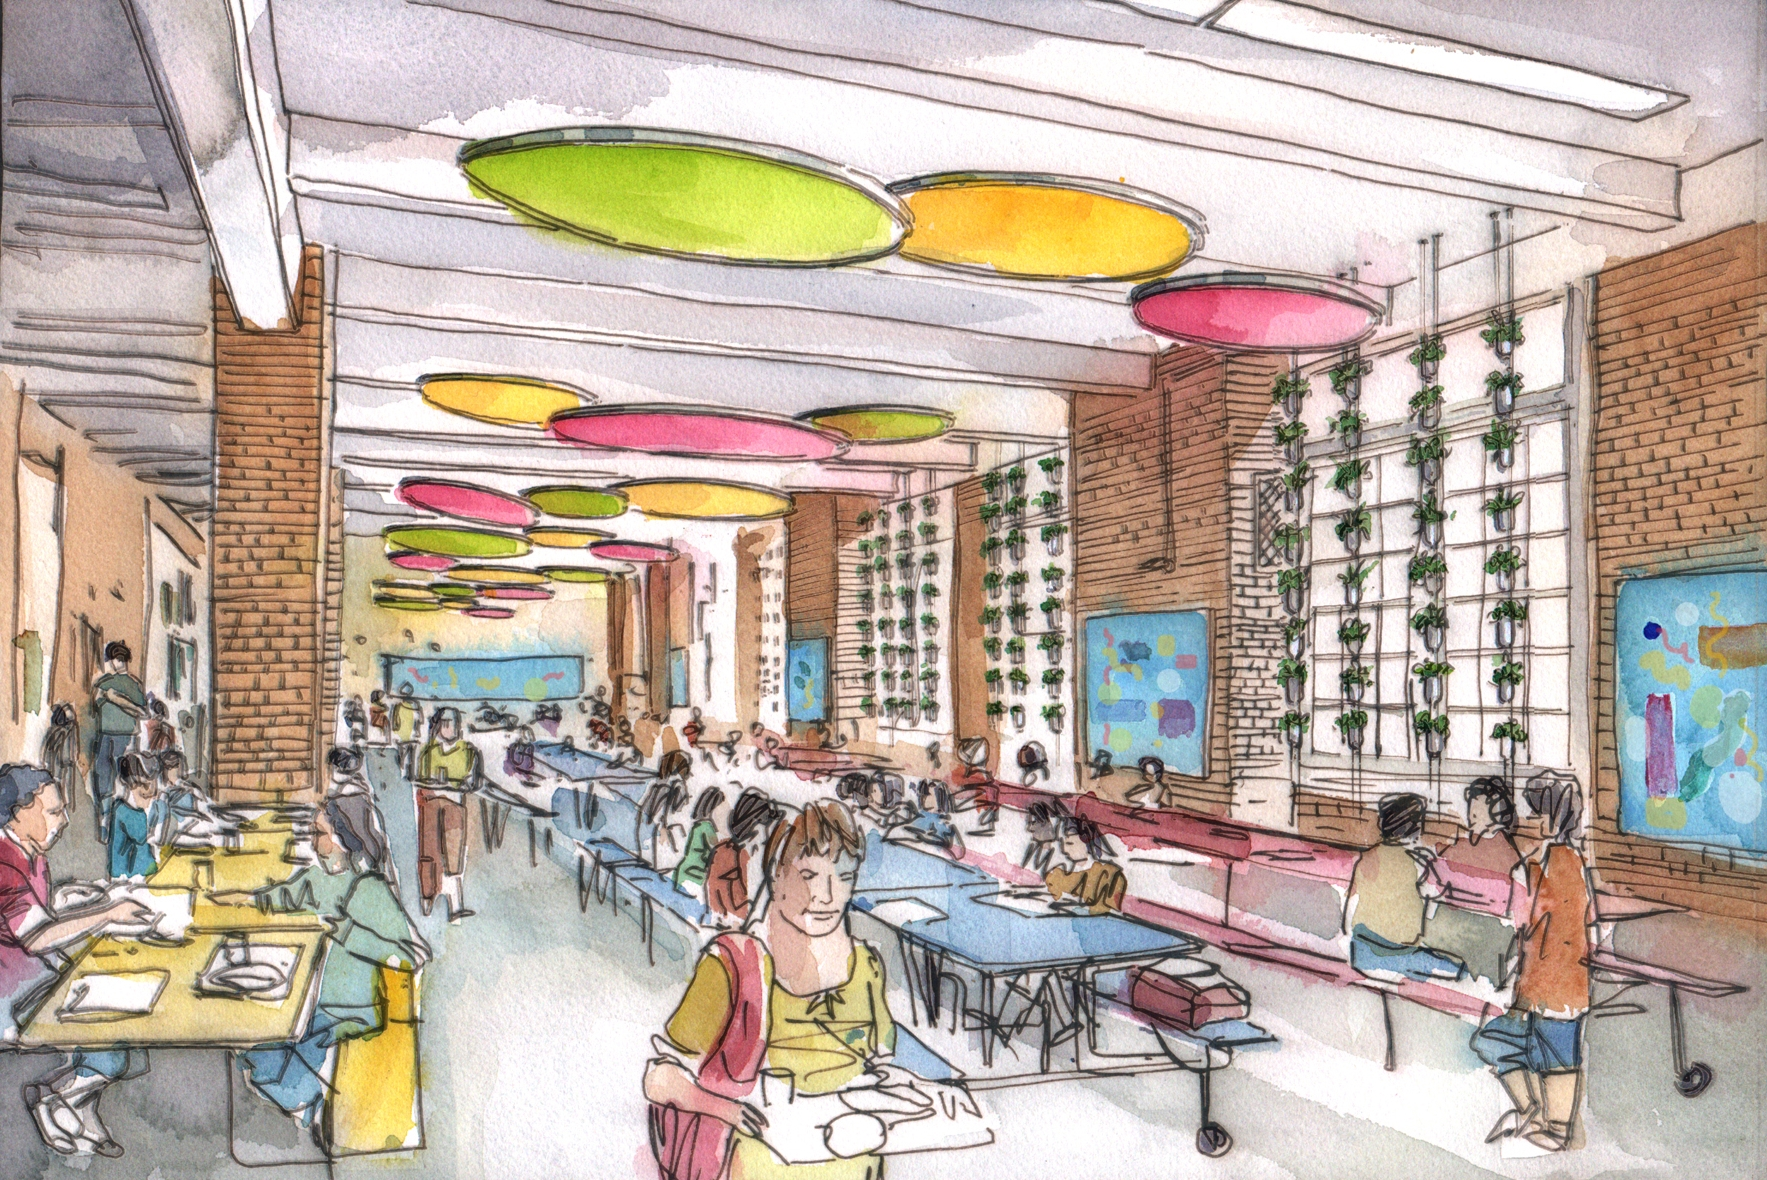 001-PS10-Cafeteria -Proposed-rendering.jpg